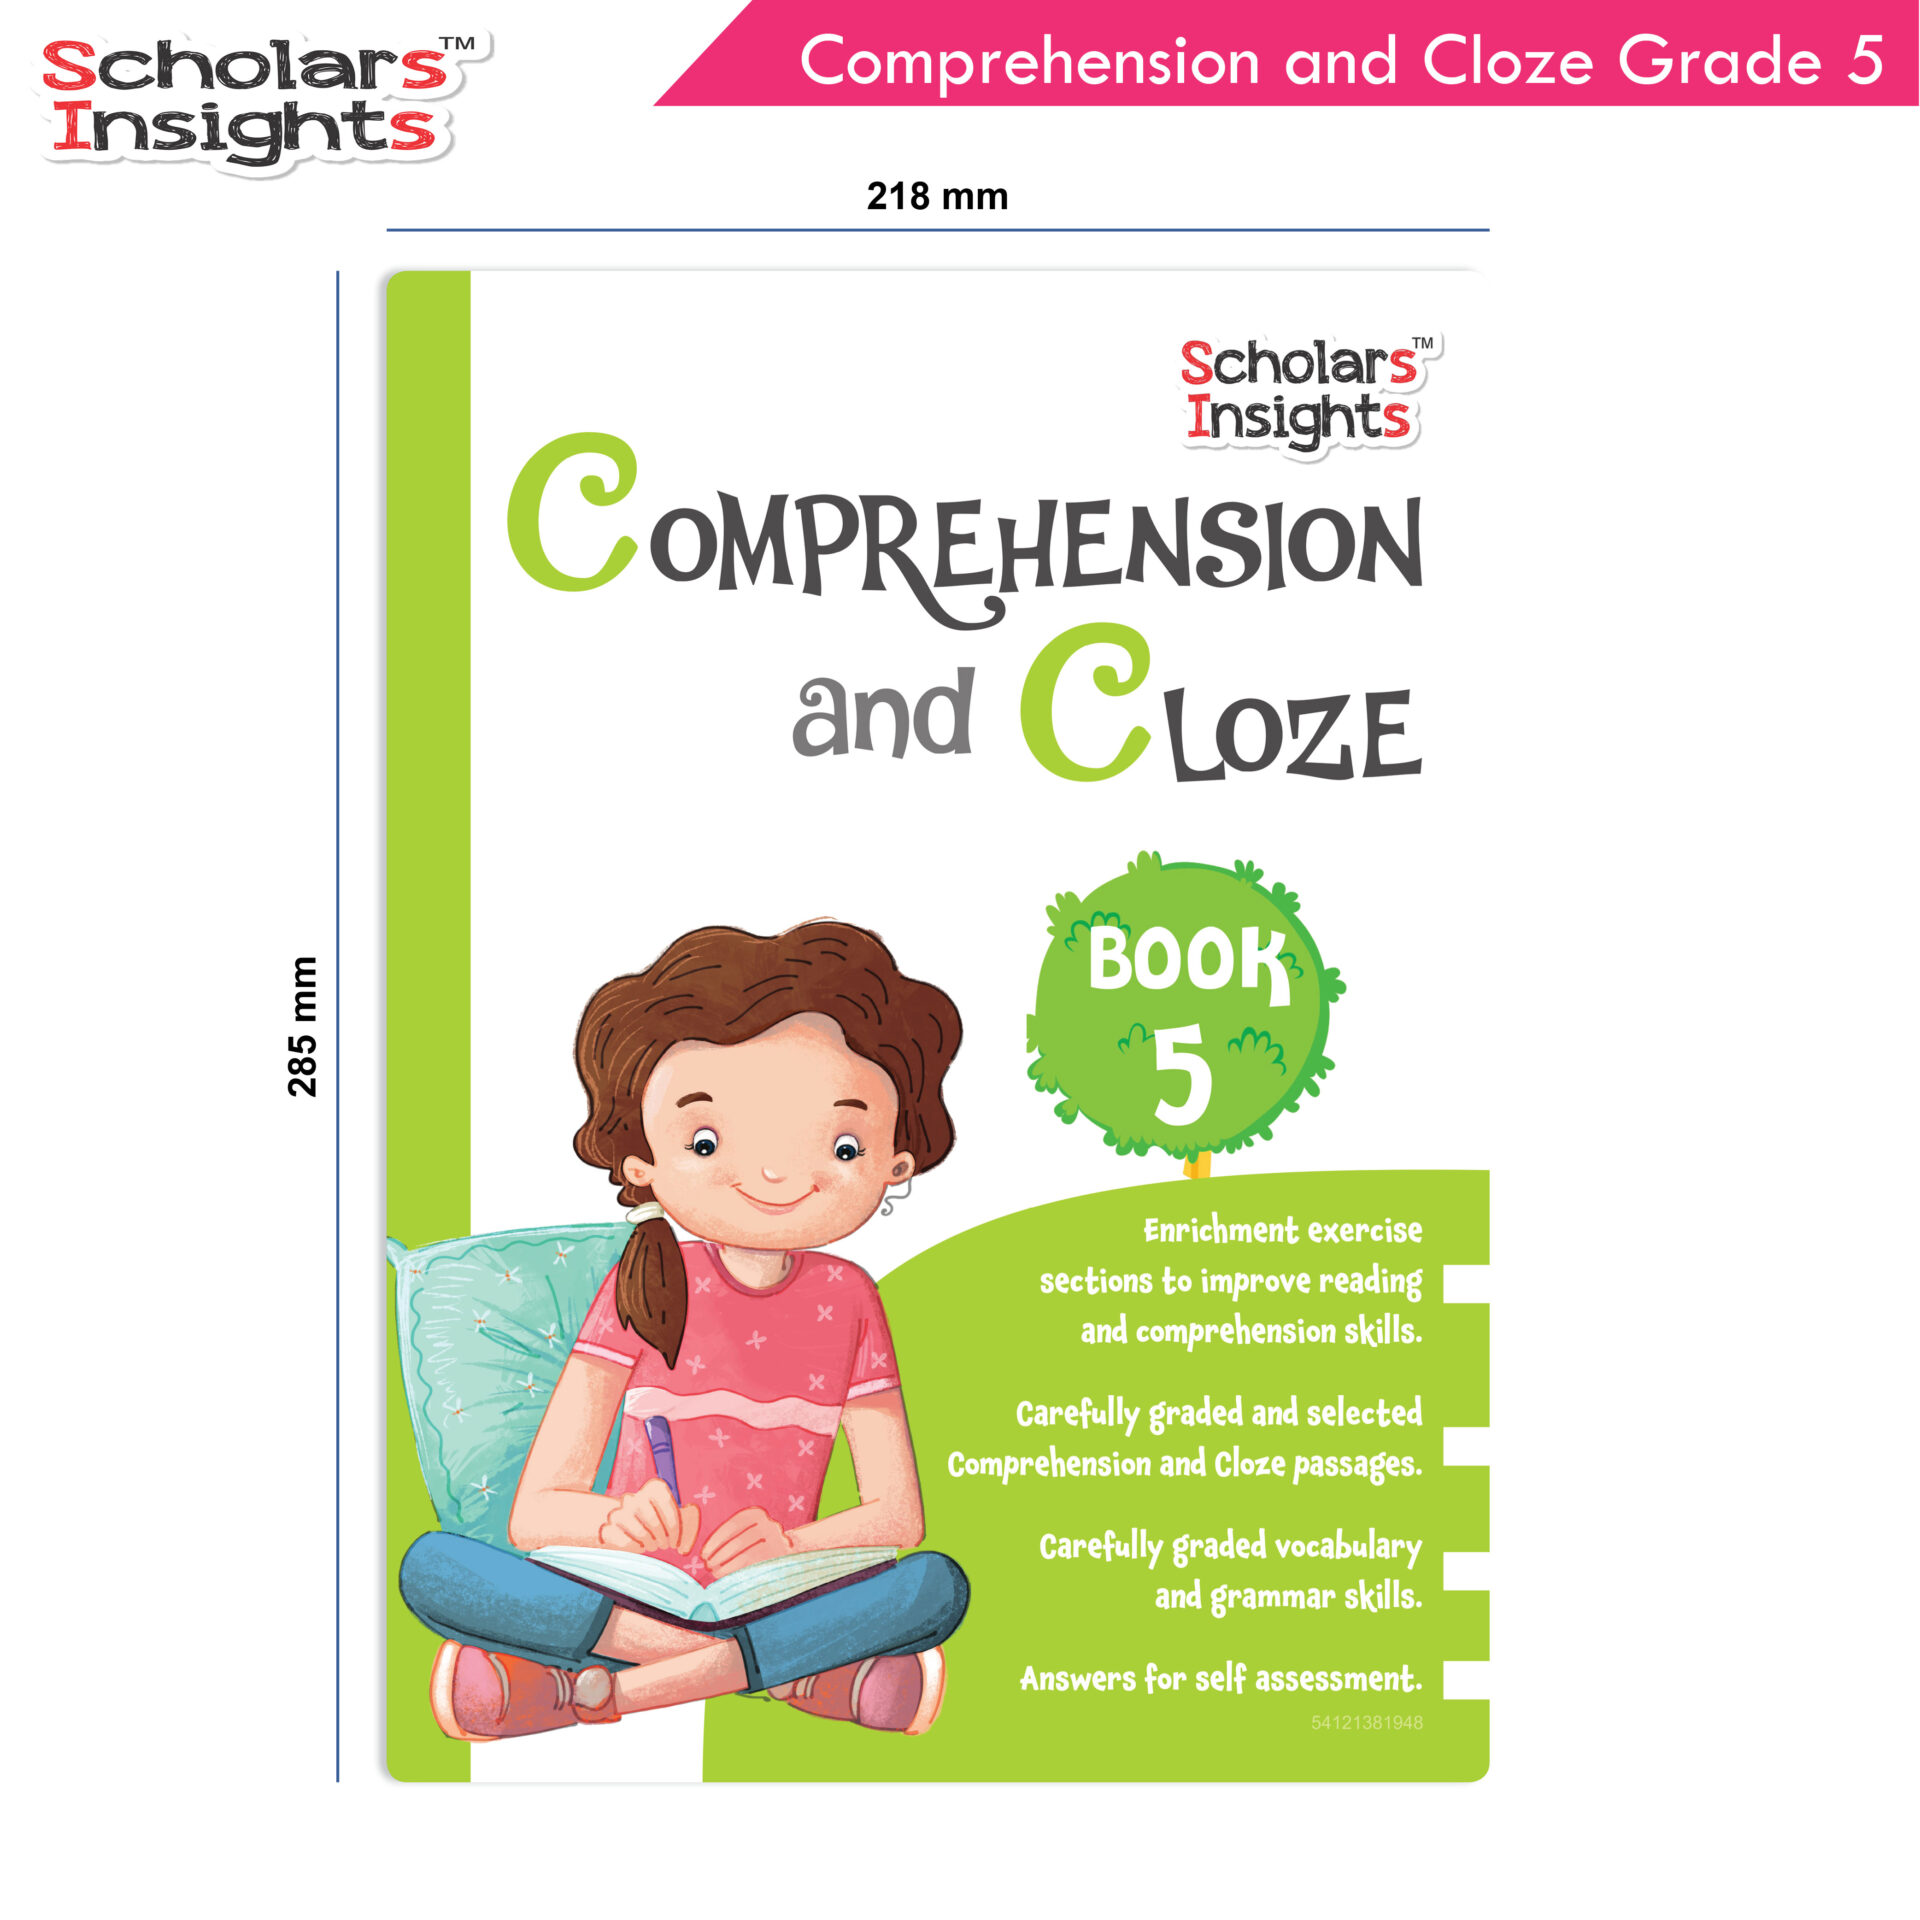 Scholars Insights Comprehension and Cloze Grade 5 2 1